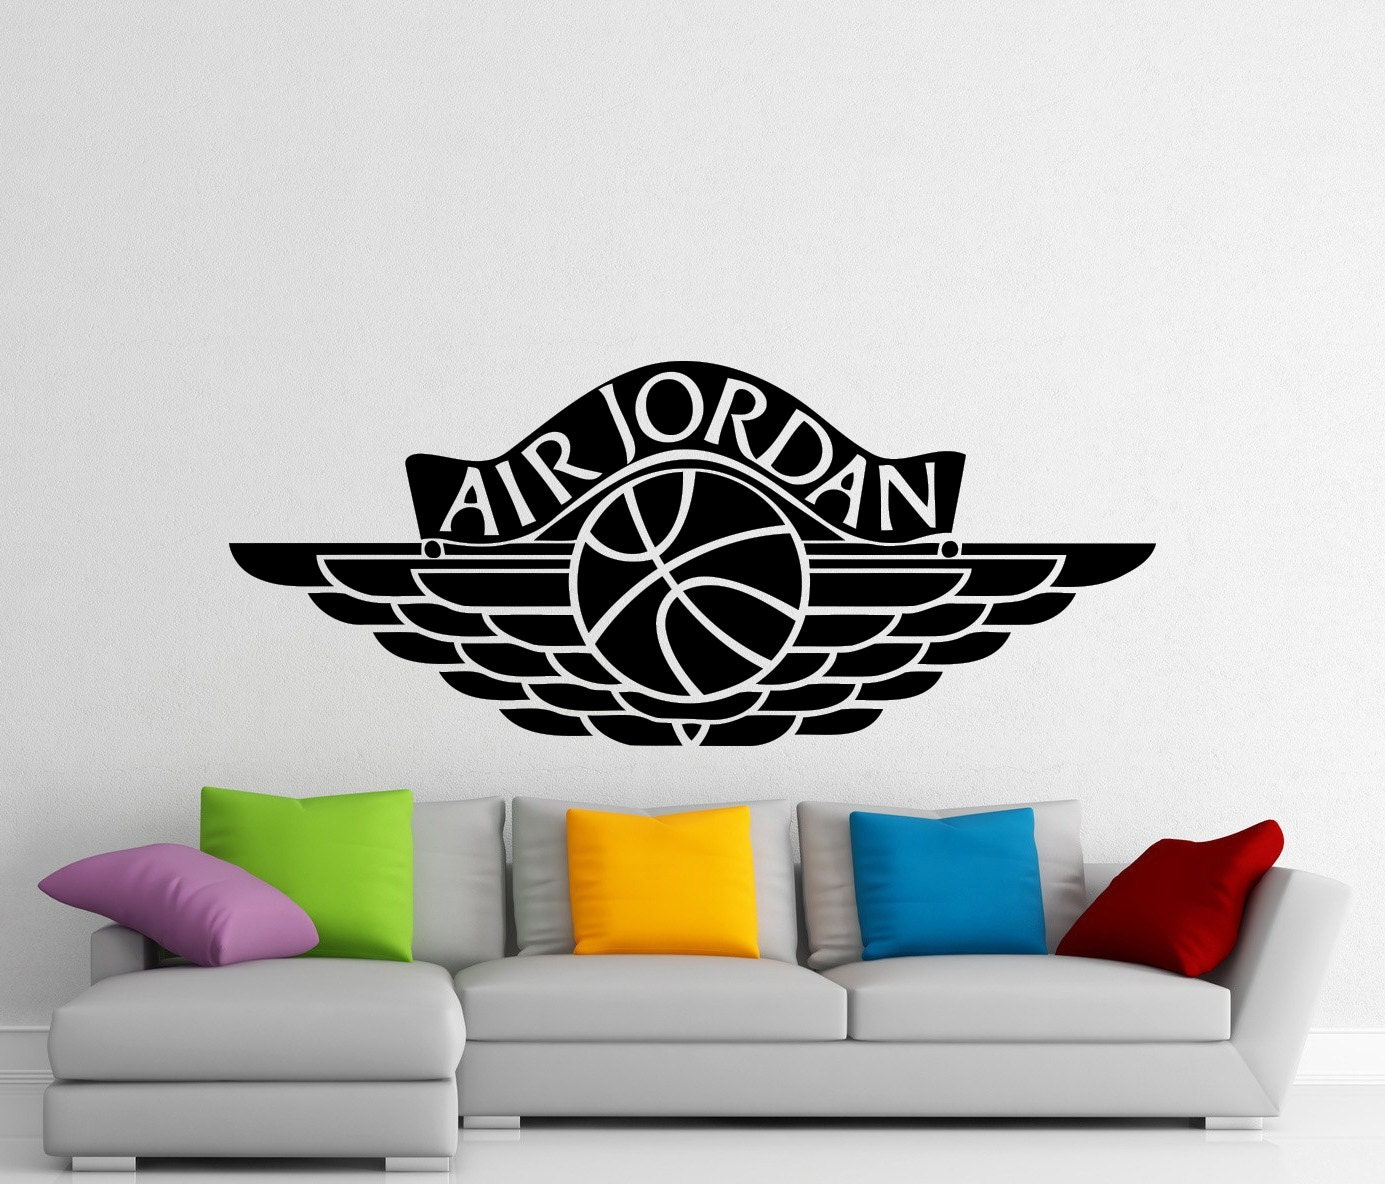 air jordan wall sticker sports basketball logo vinyl decal michael jordan wall stickers ebay